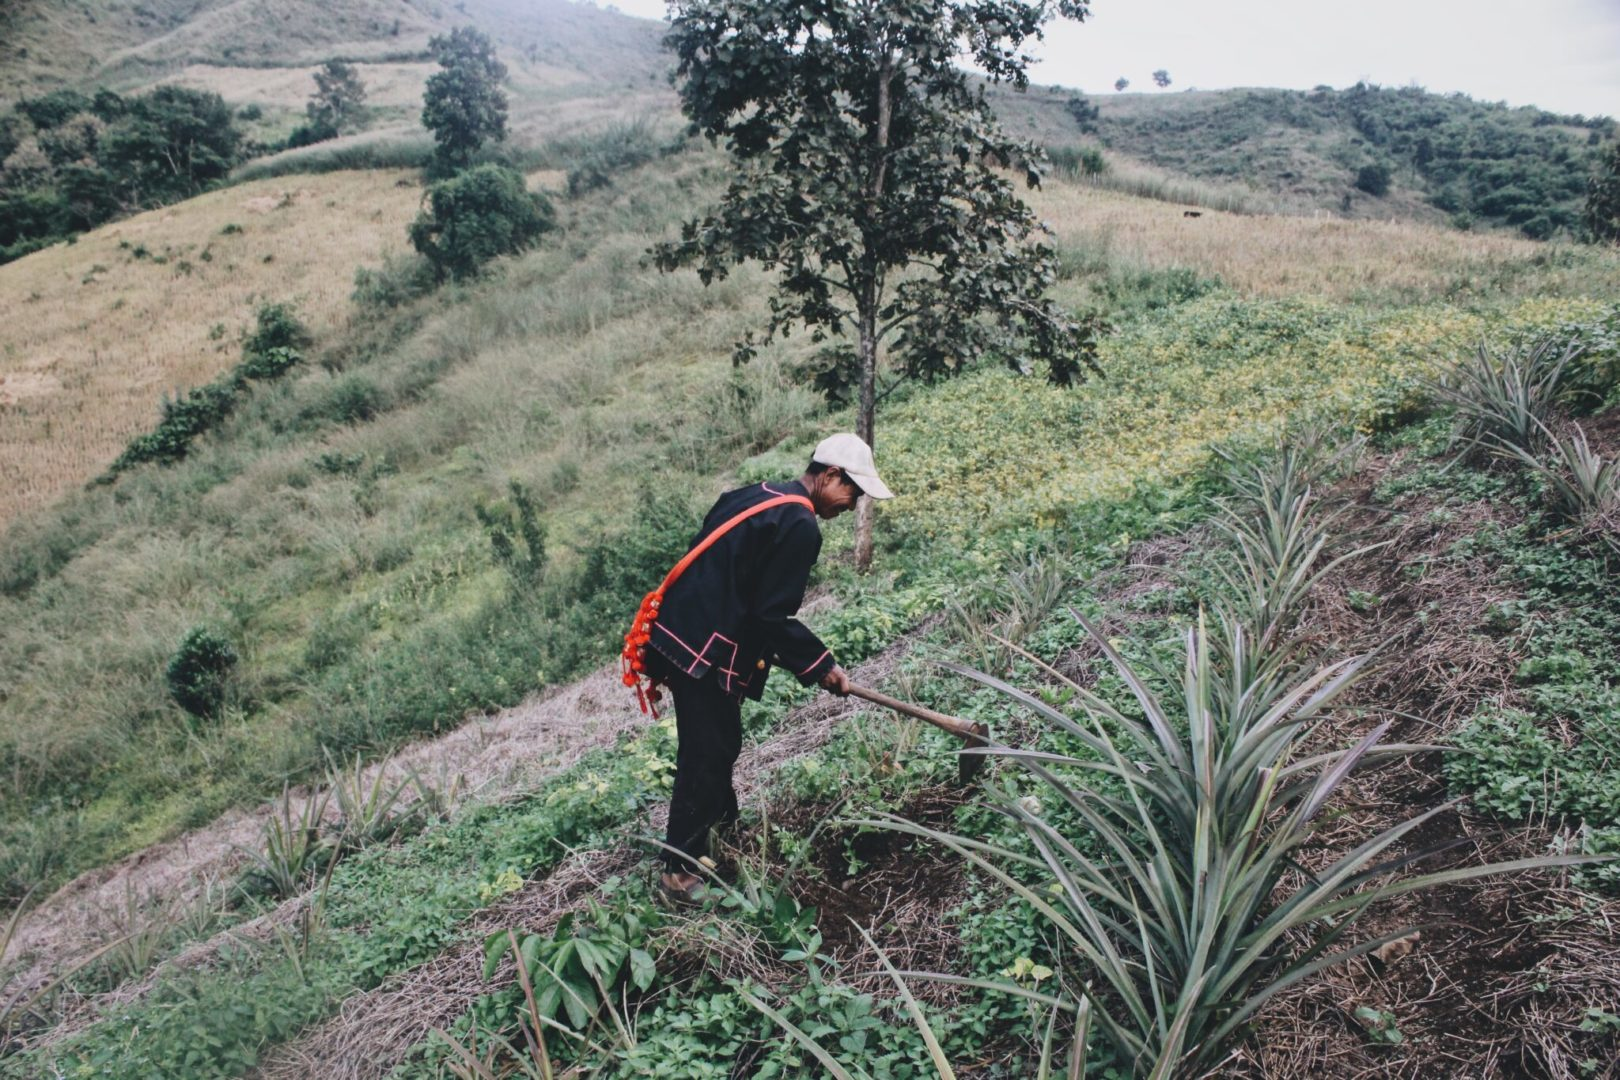 Some communities rely on agriculture for a living